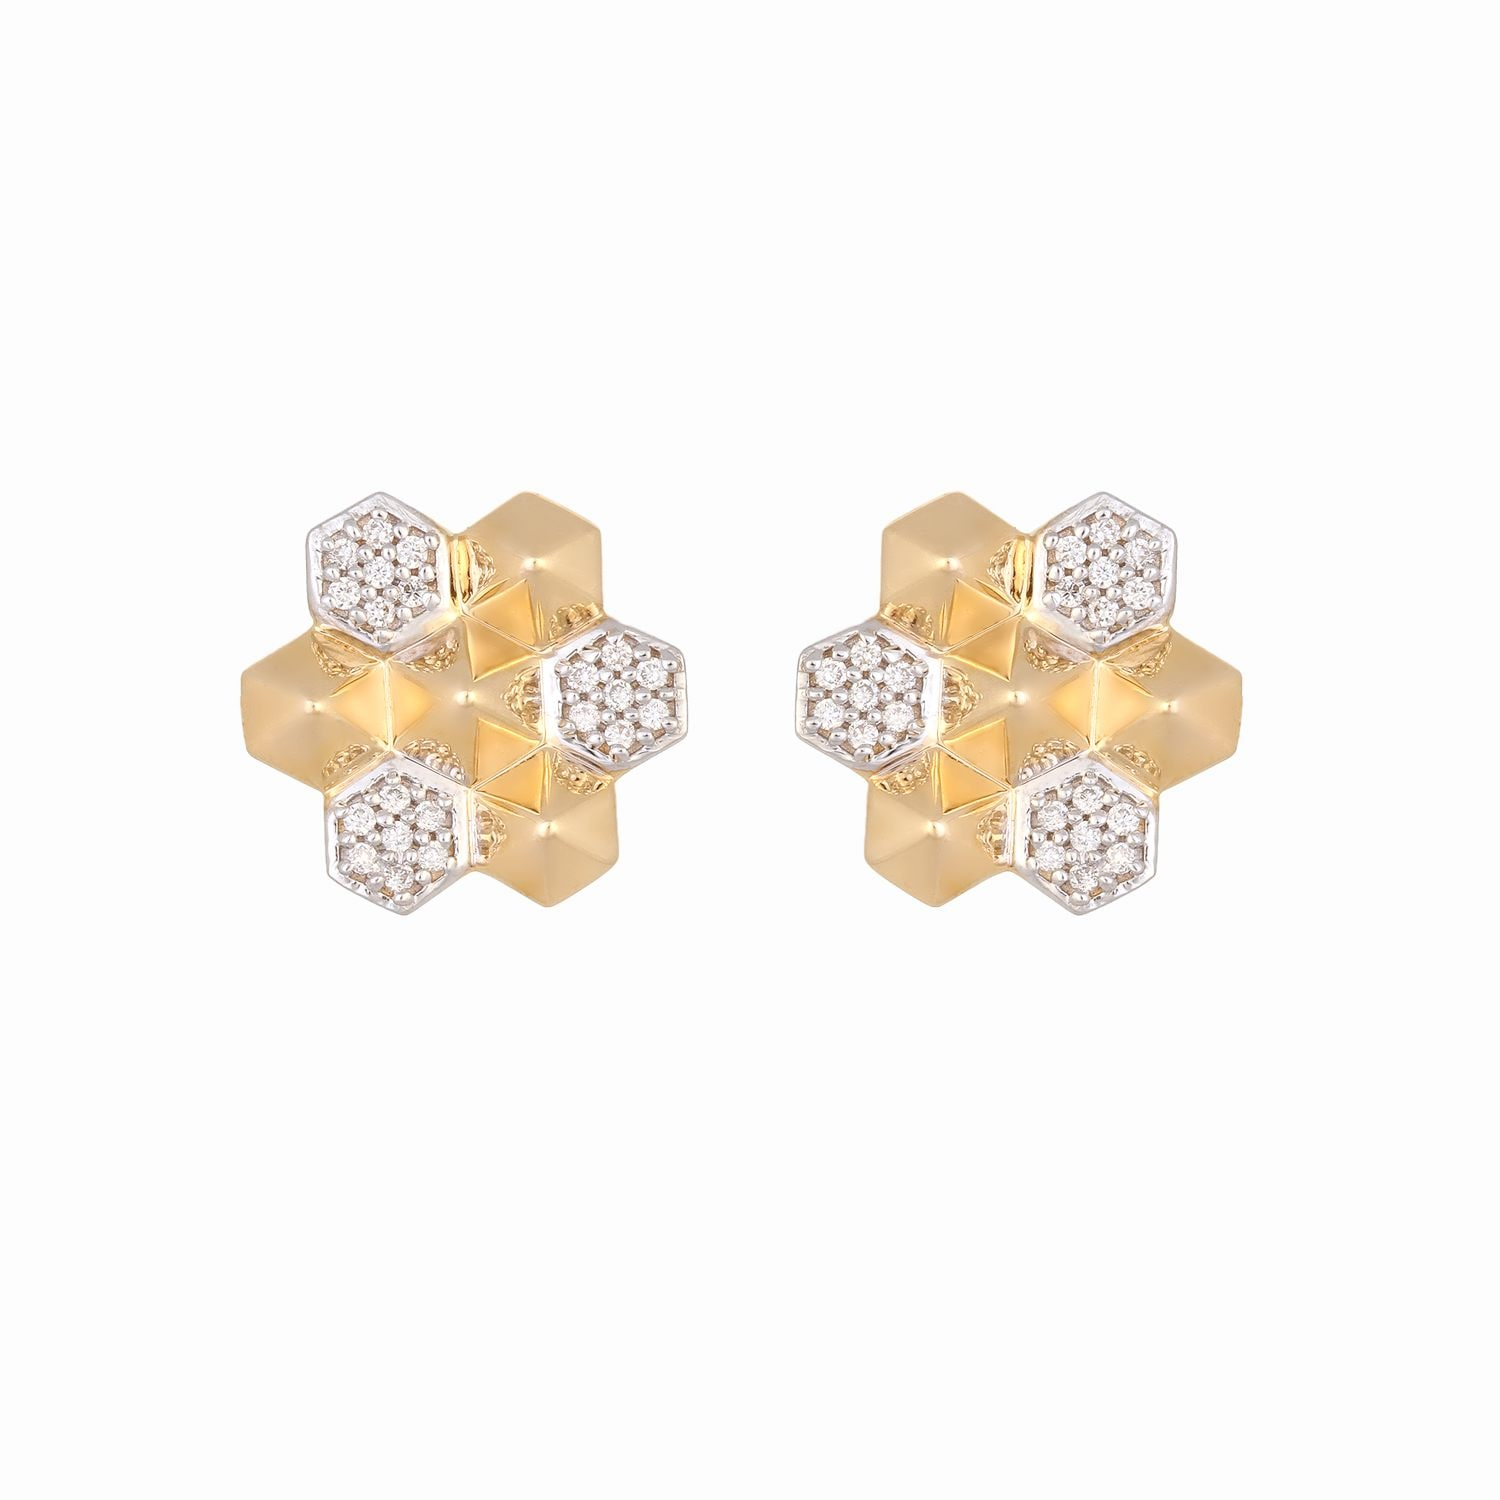 b62255cd5 Mia by Tanishq 14KT Yellow Gold Diamond Stud Earrings with Floral Design